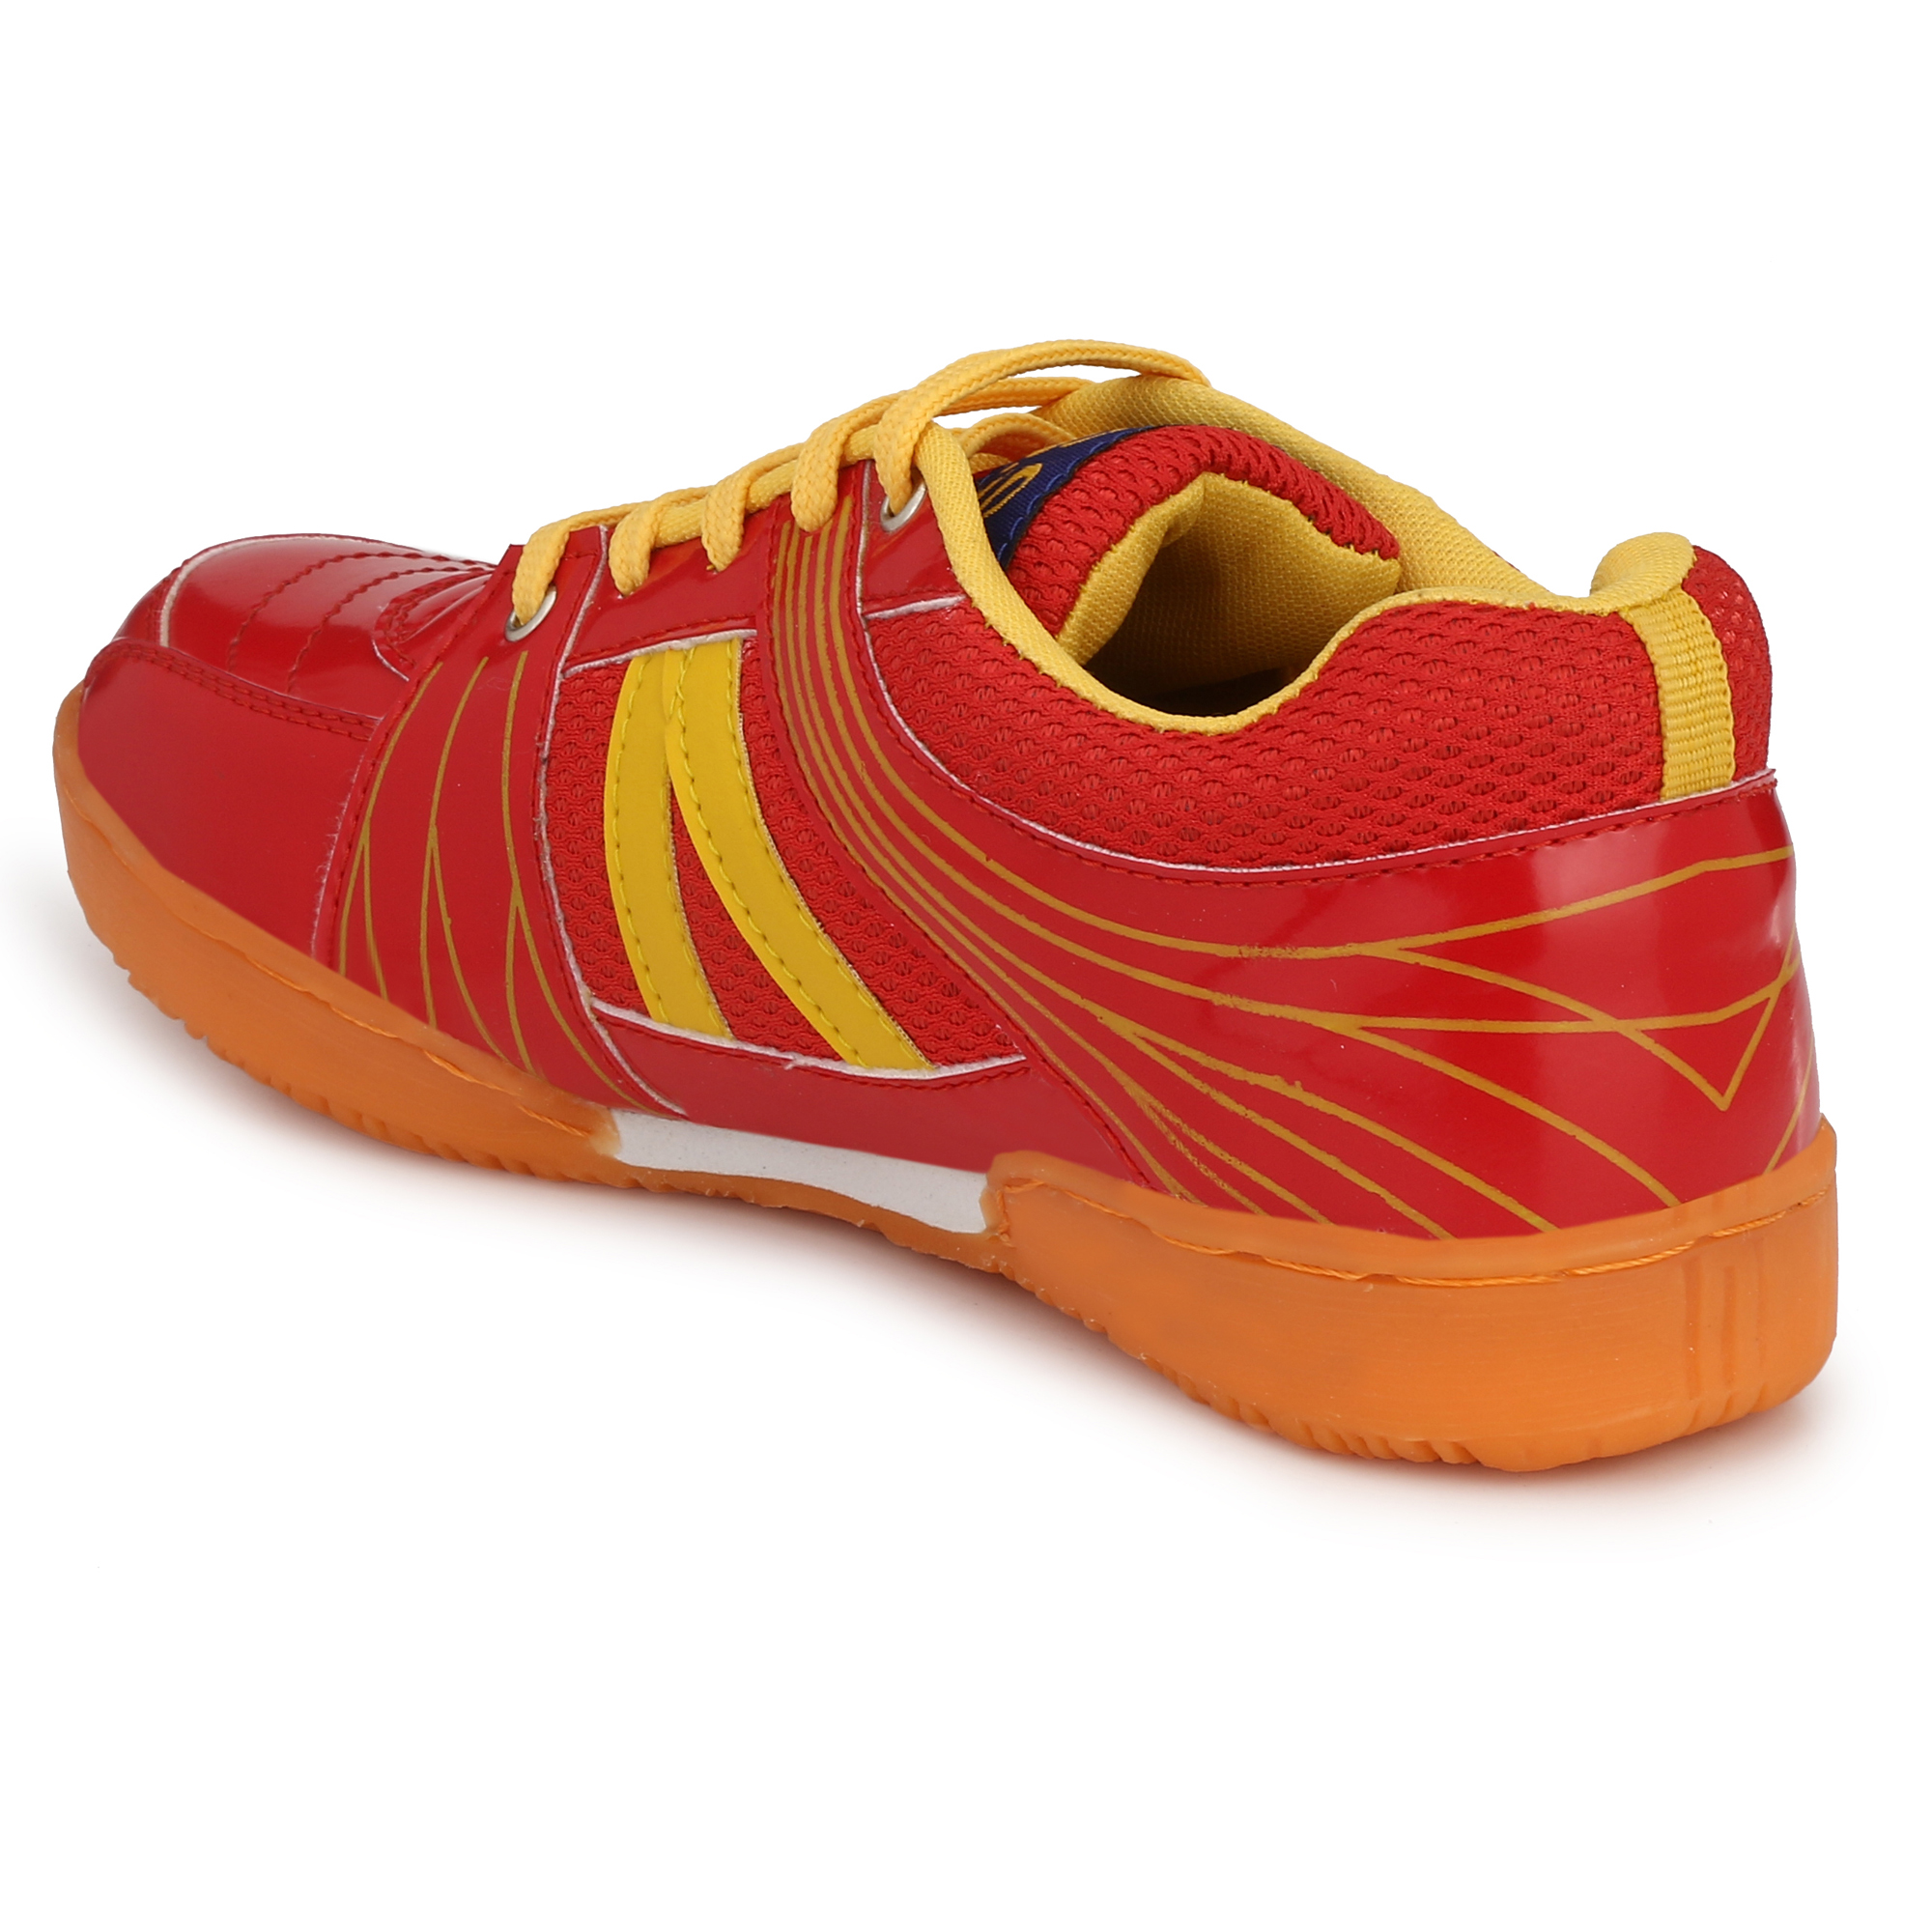 BUCIK Men's Red Synthetic Leather Non Marking Badminton Sports Shoes  BCK042-RED (Red,6-12,8 PAIR)